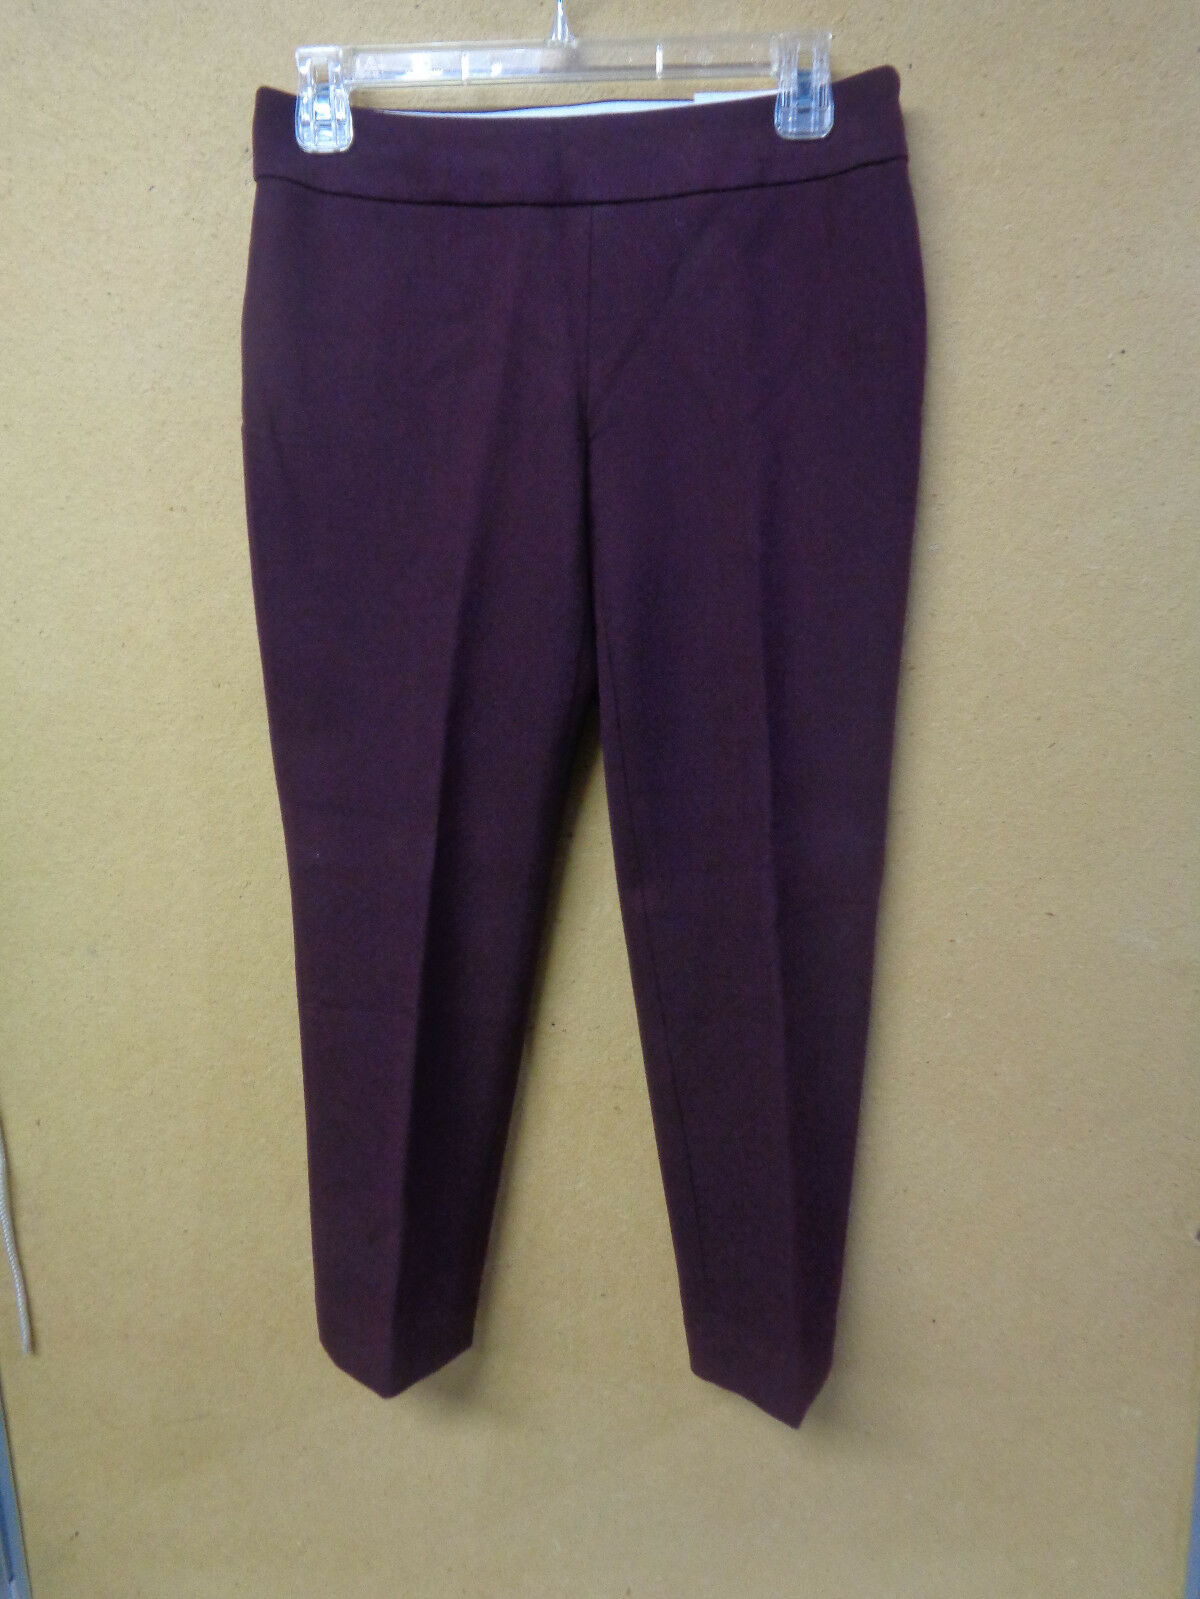 Ann Taylor LOFT Julie Skinny Ankle Dress Pants Petite Burgundy Size 0P